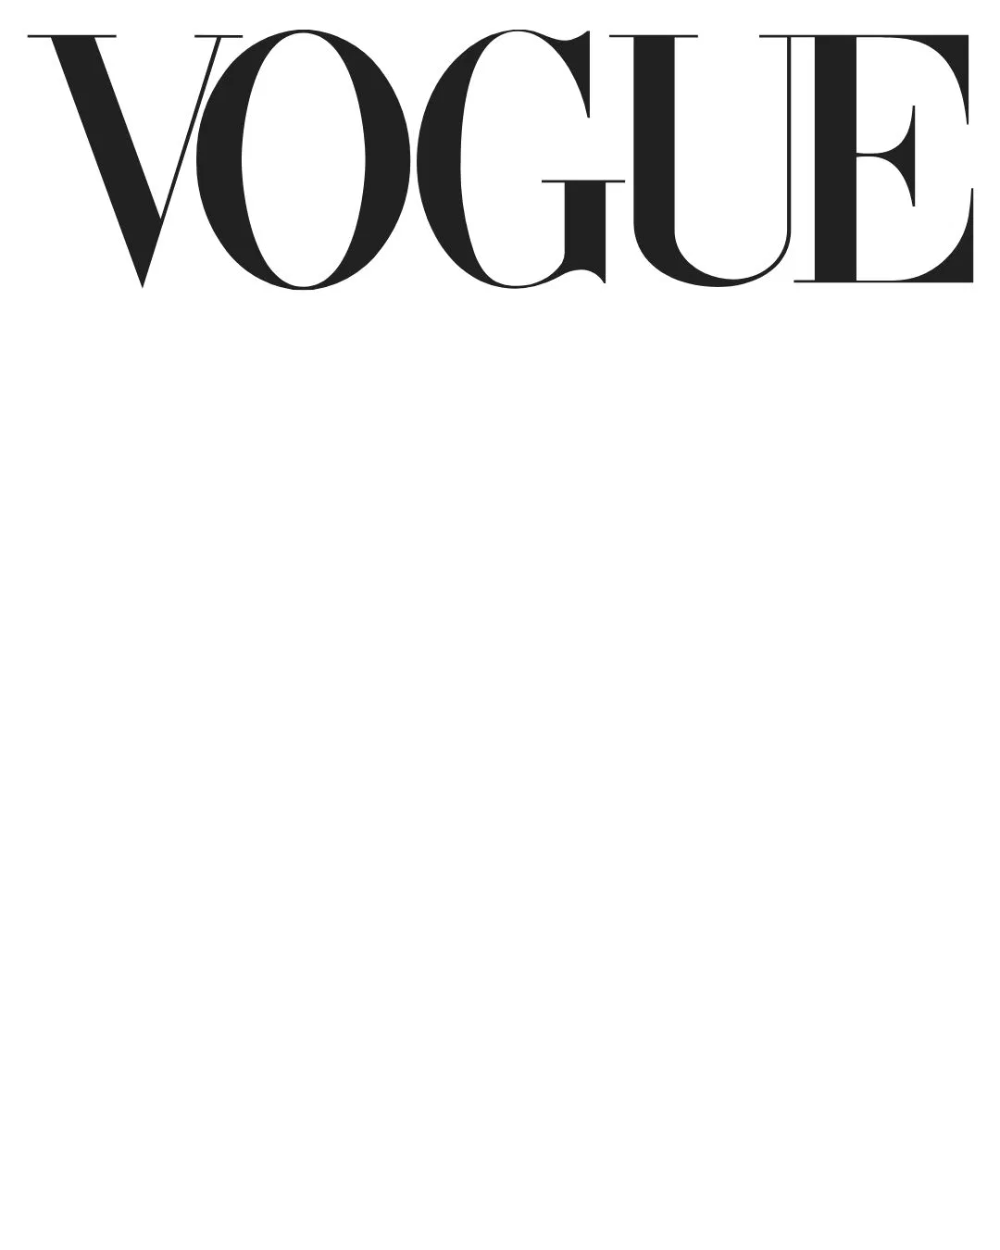 15 Best Vogue Challenge Templates Backgrounds For Tiktok Instagram Vogue Photo Aesthetic Letters Magazine Cover Template